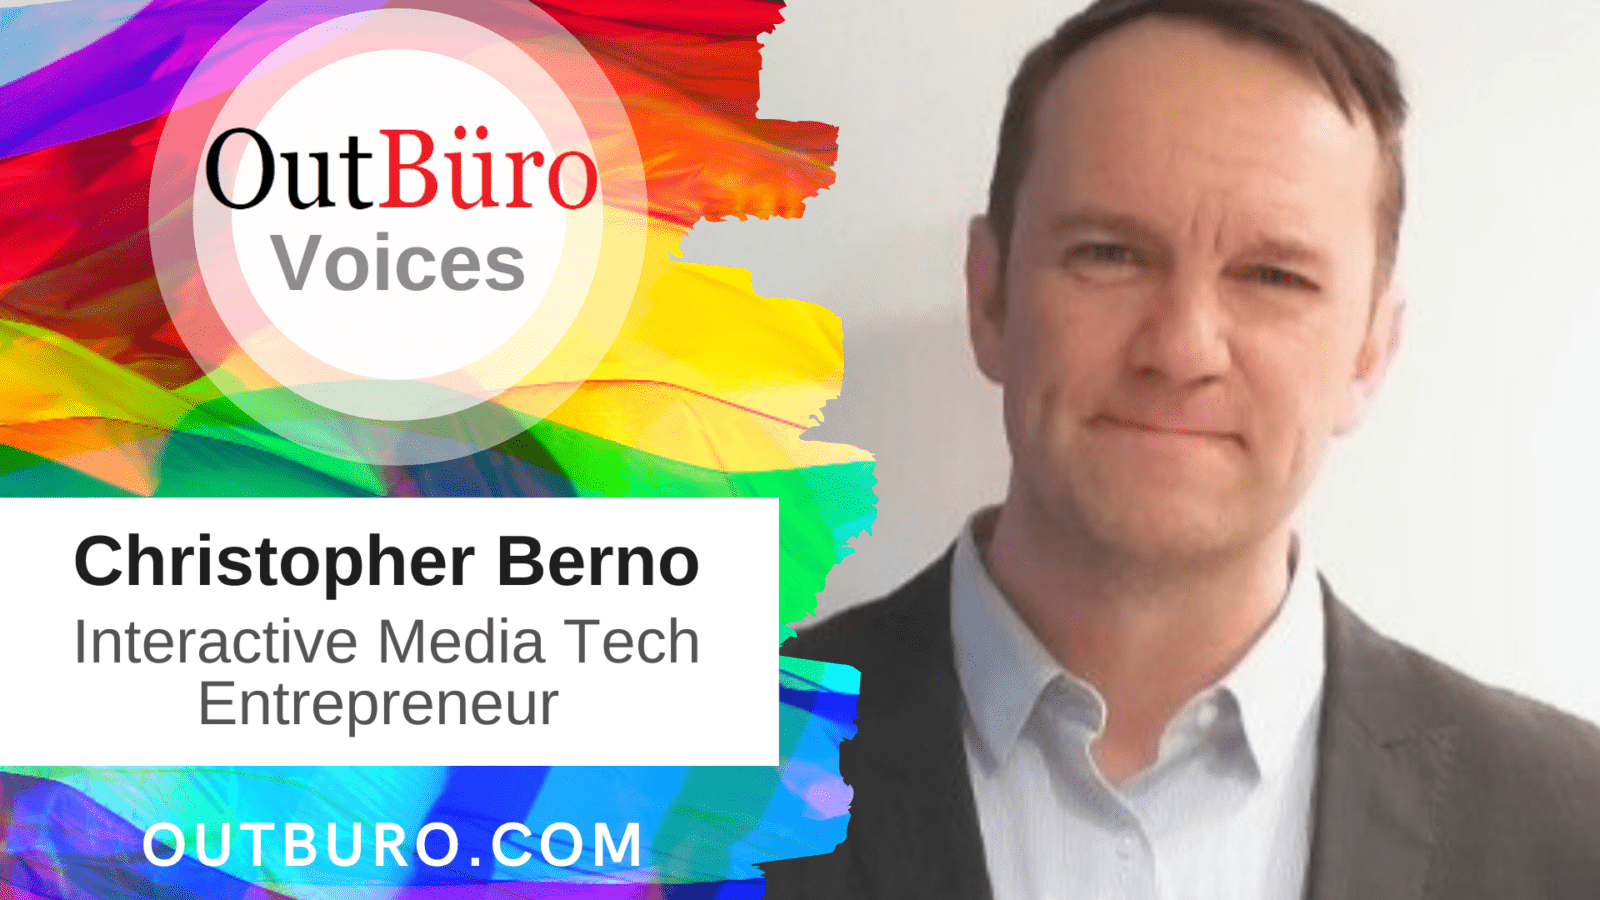 OutBuro Voices Interview Christopher Berno LGBT Entrepreneur Professional Media Tech Startup Business Owner Video Interview Podcast